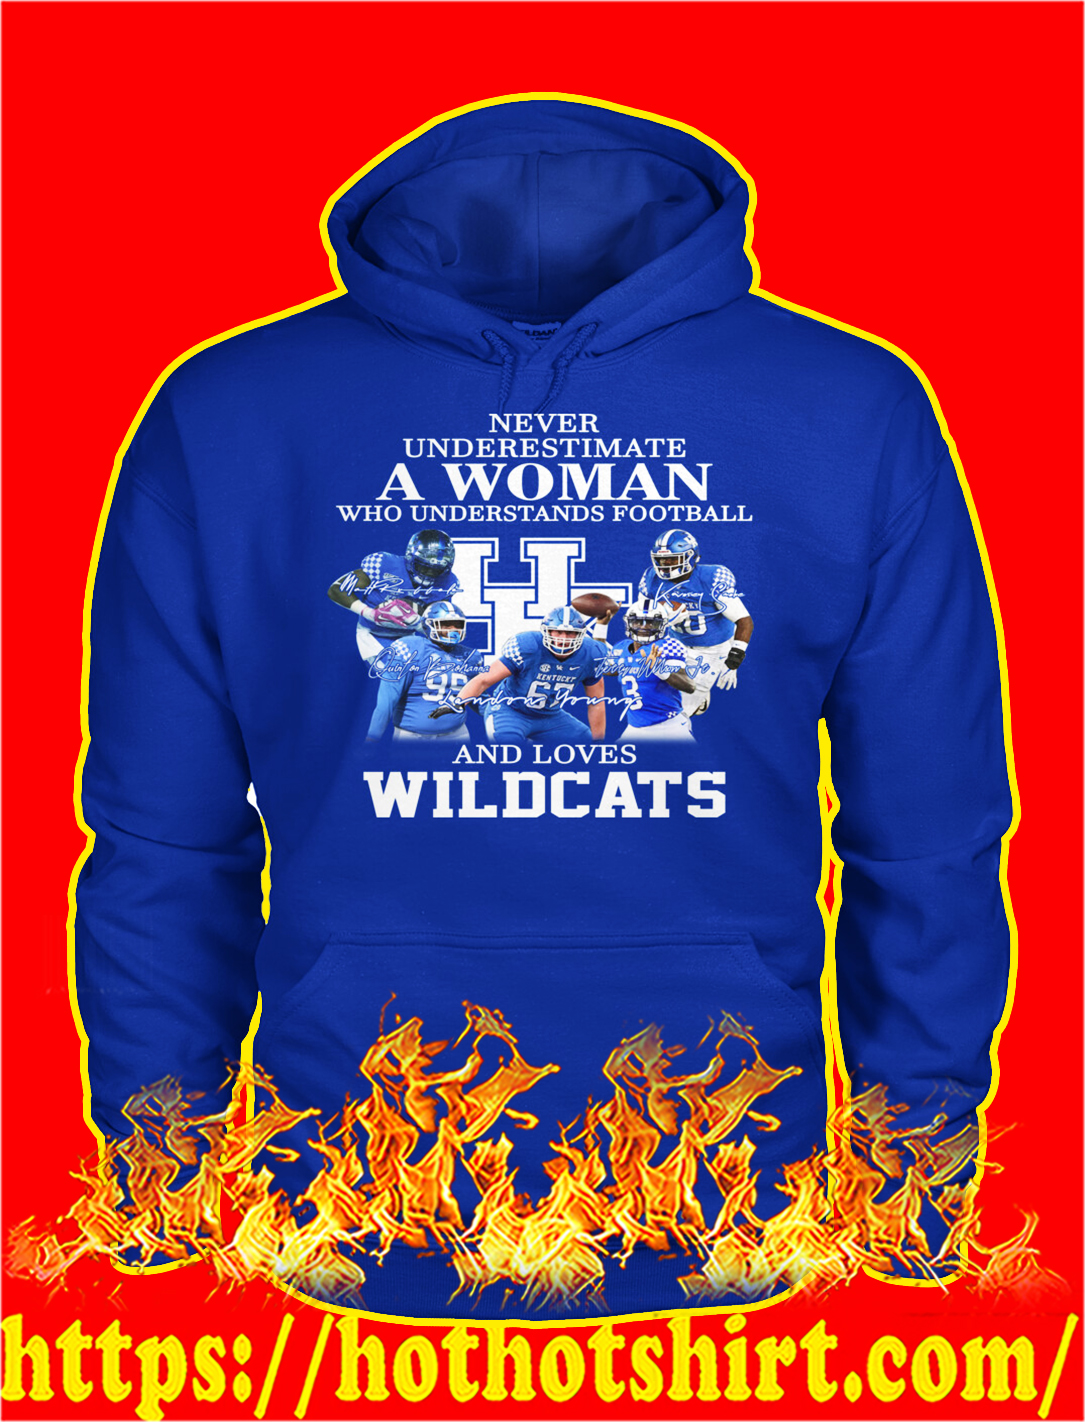 Never underestimate a woman understands football and loves wildcats hoodie